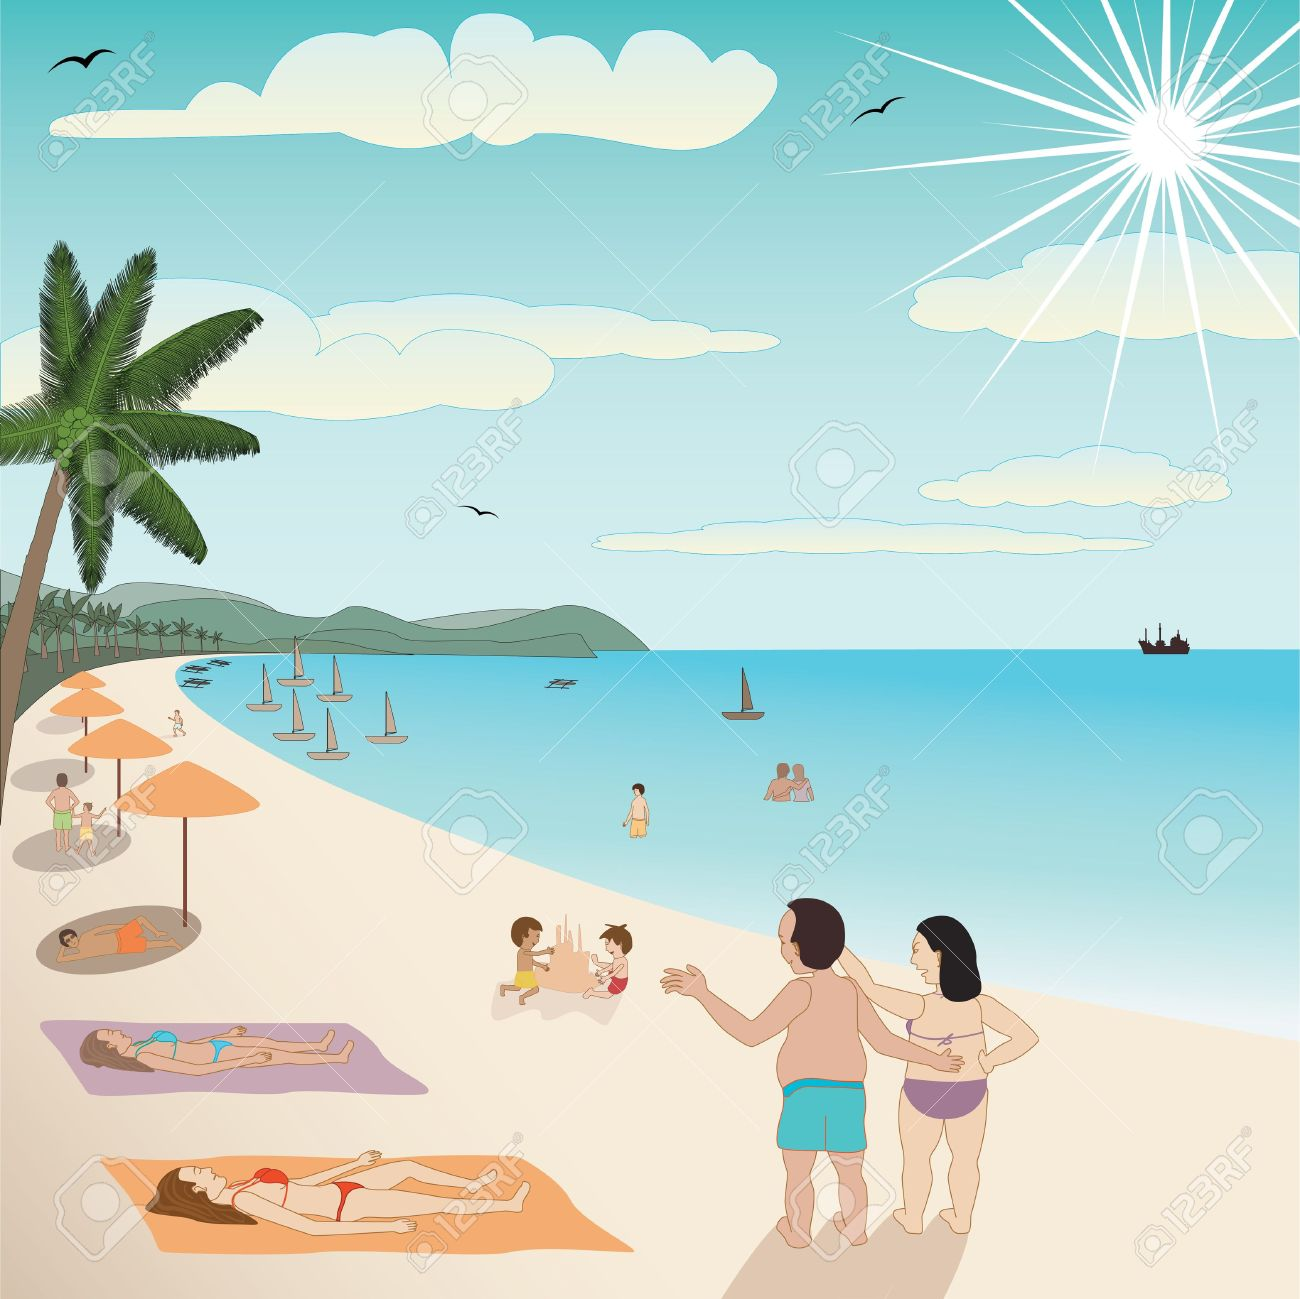 Free Summer People Cliparts, Download Free Clip Art, Free.